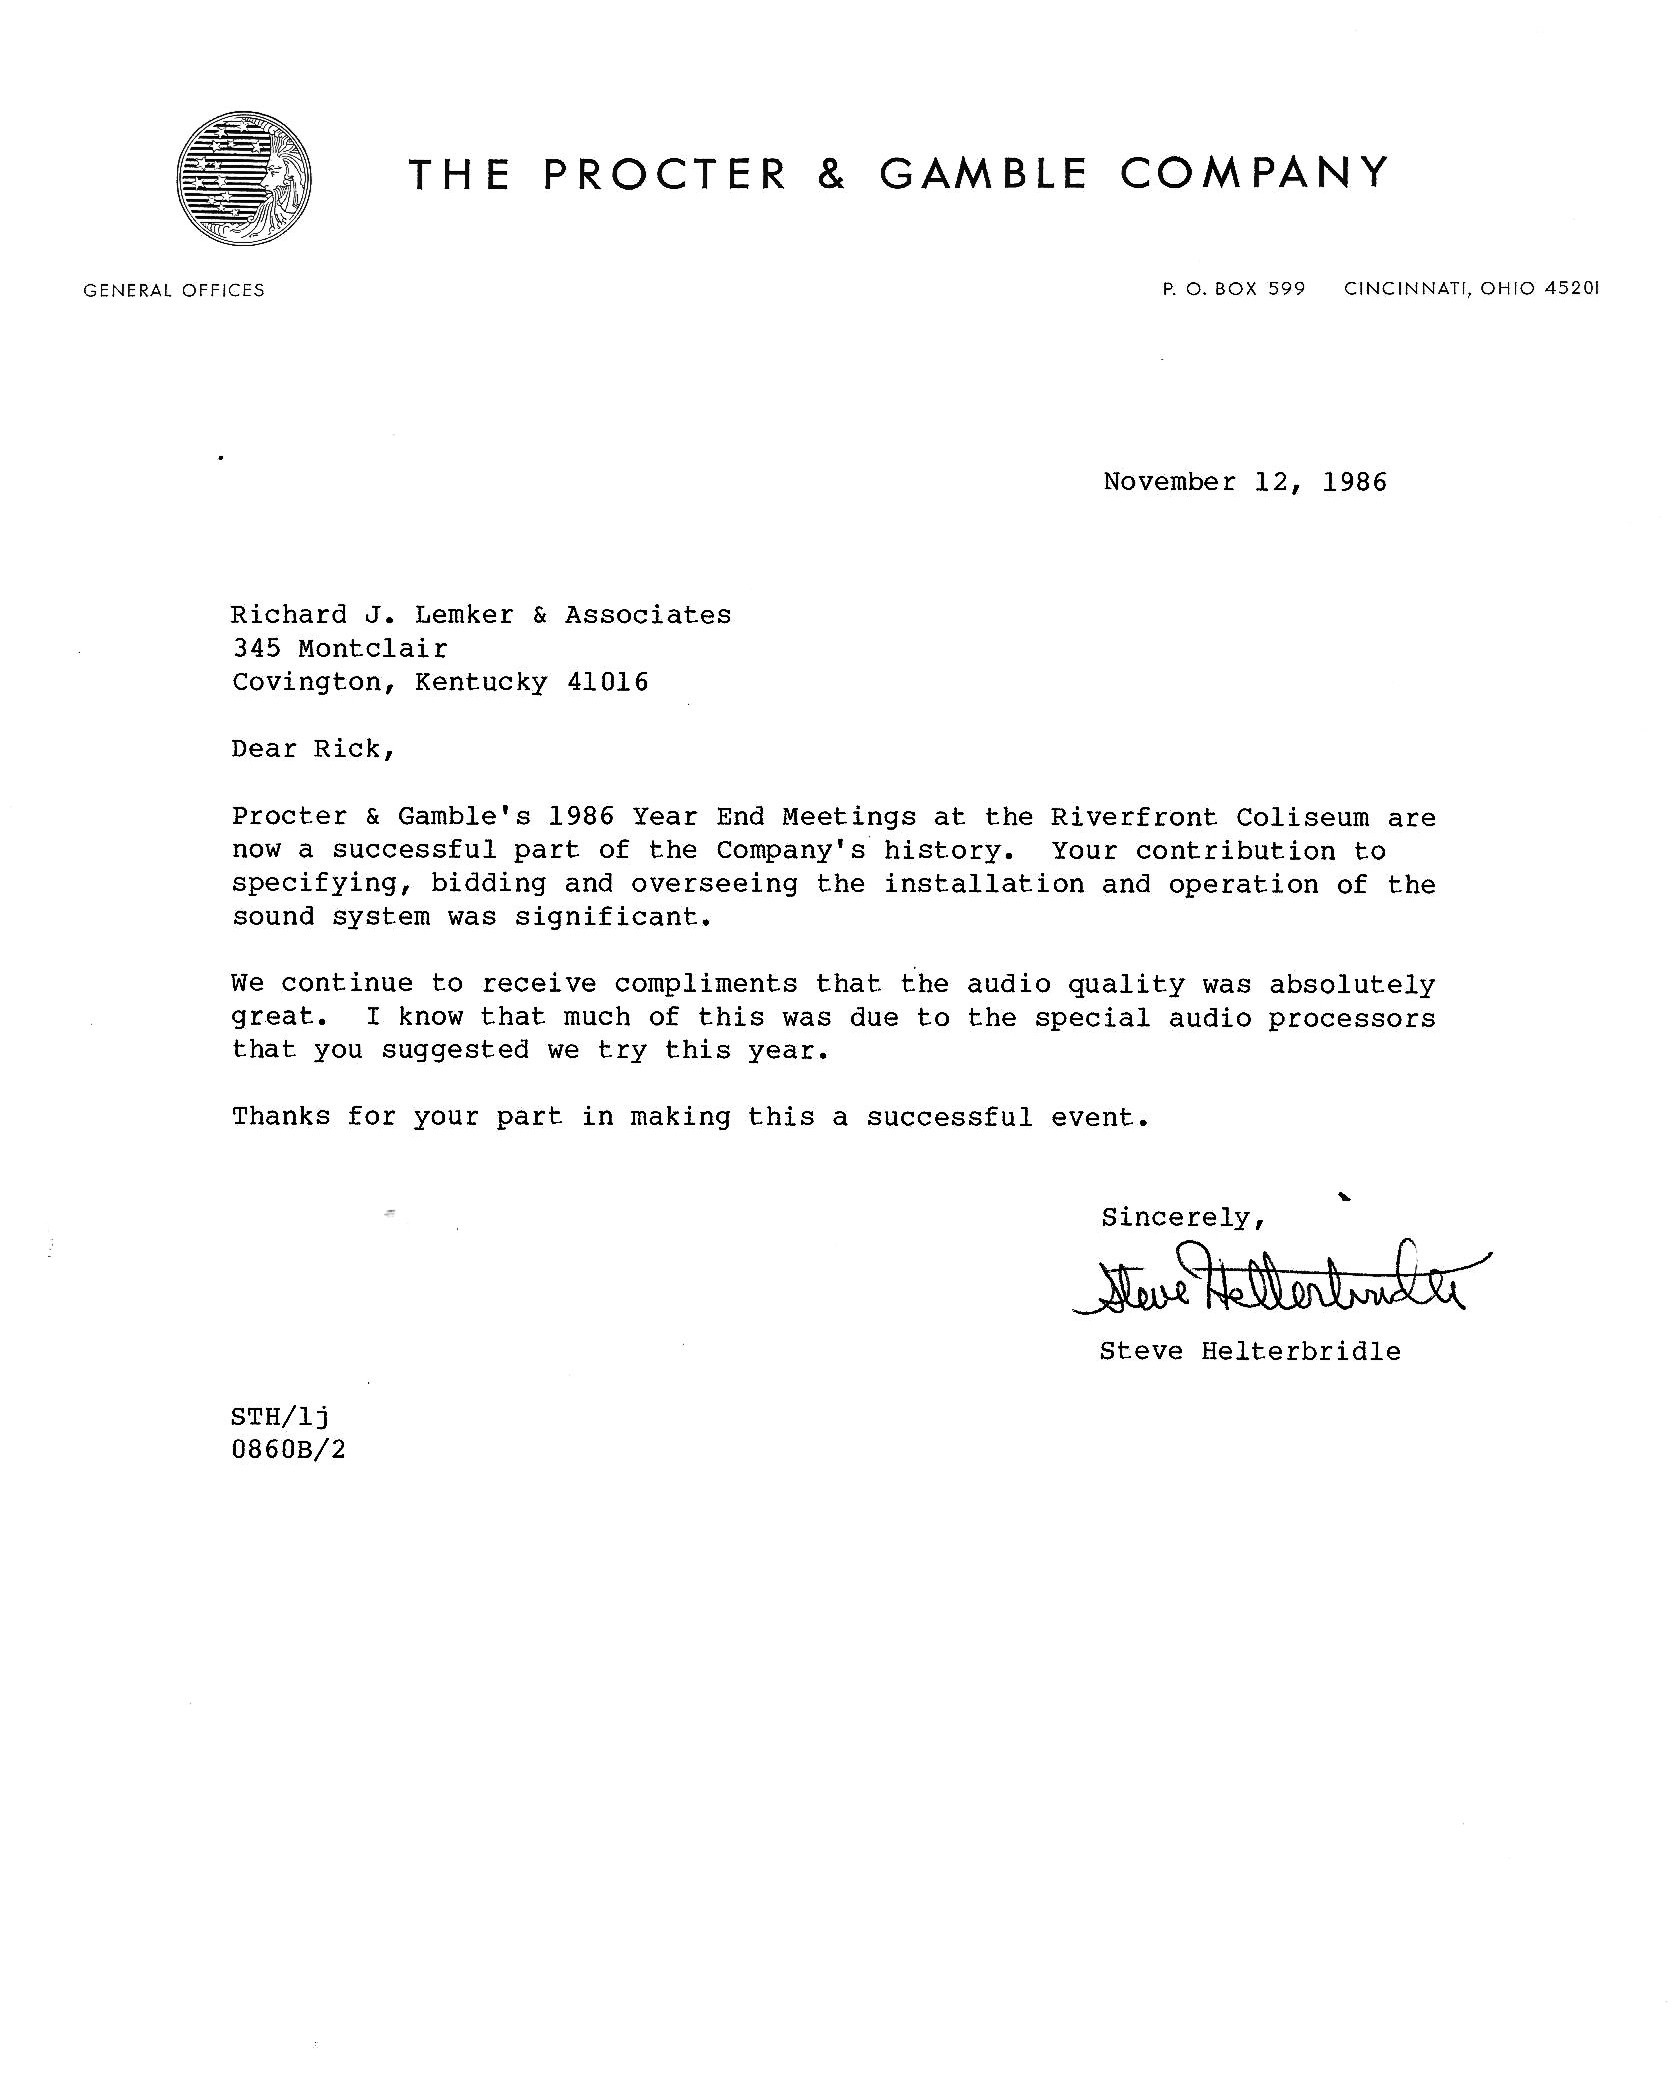 12 Proper Way To Sign A Business Letter Radaircars